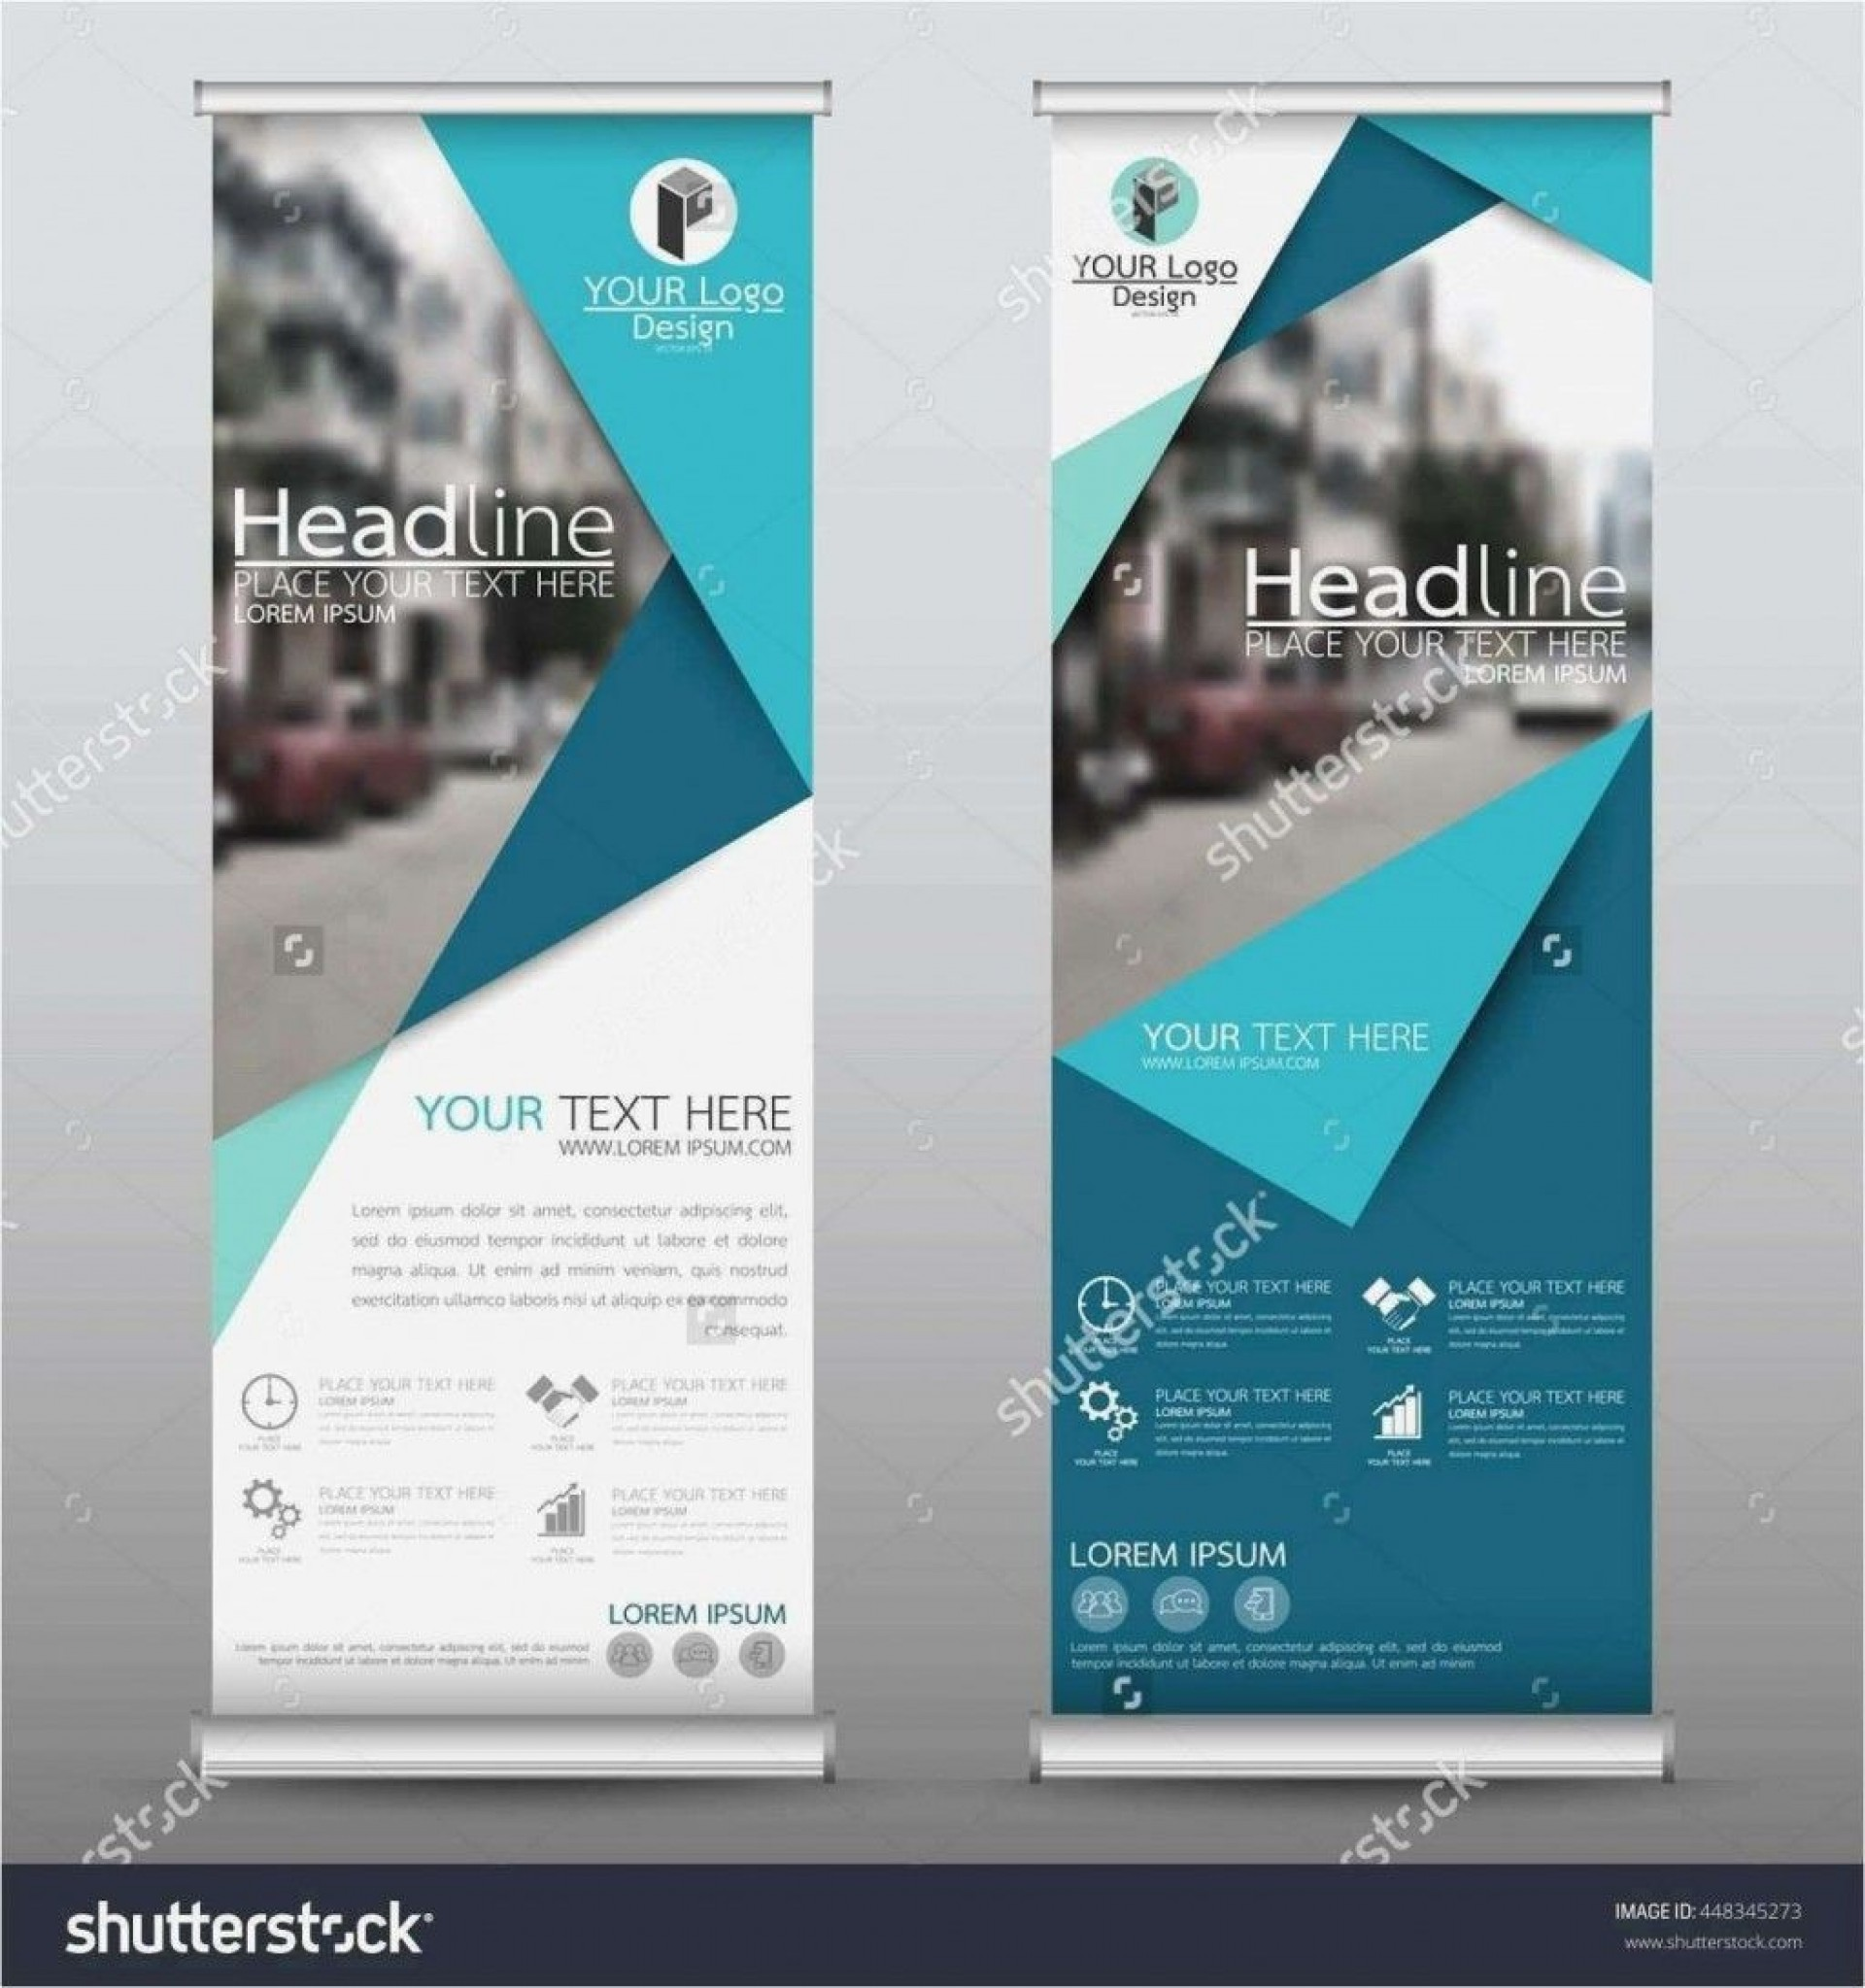 004 Stupendou Busines Flyer Template Free Printable Example 1920